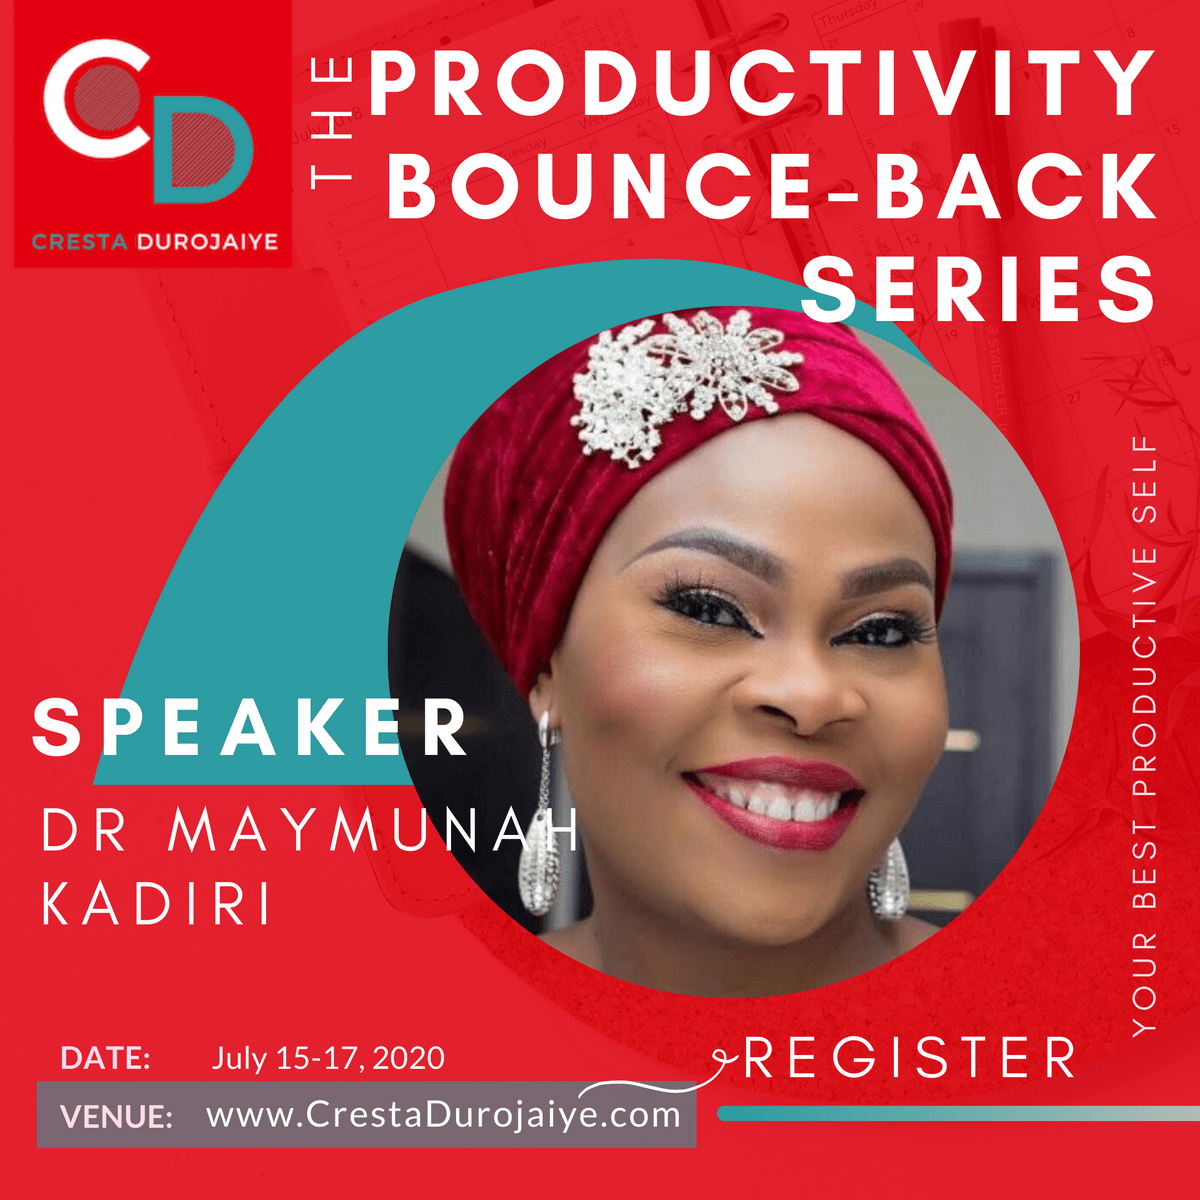 Dr Maymunah Kadiri is speaking at The Productivity Bounce Back Series